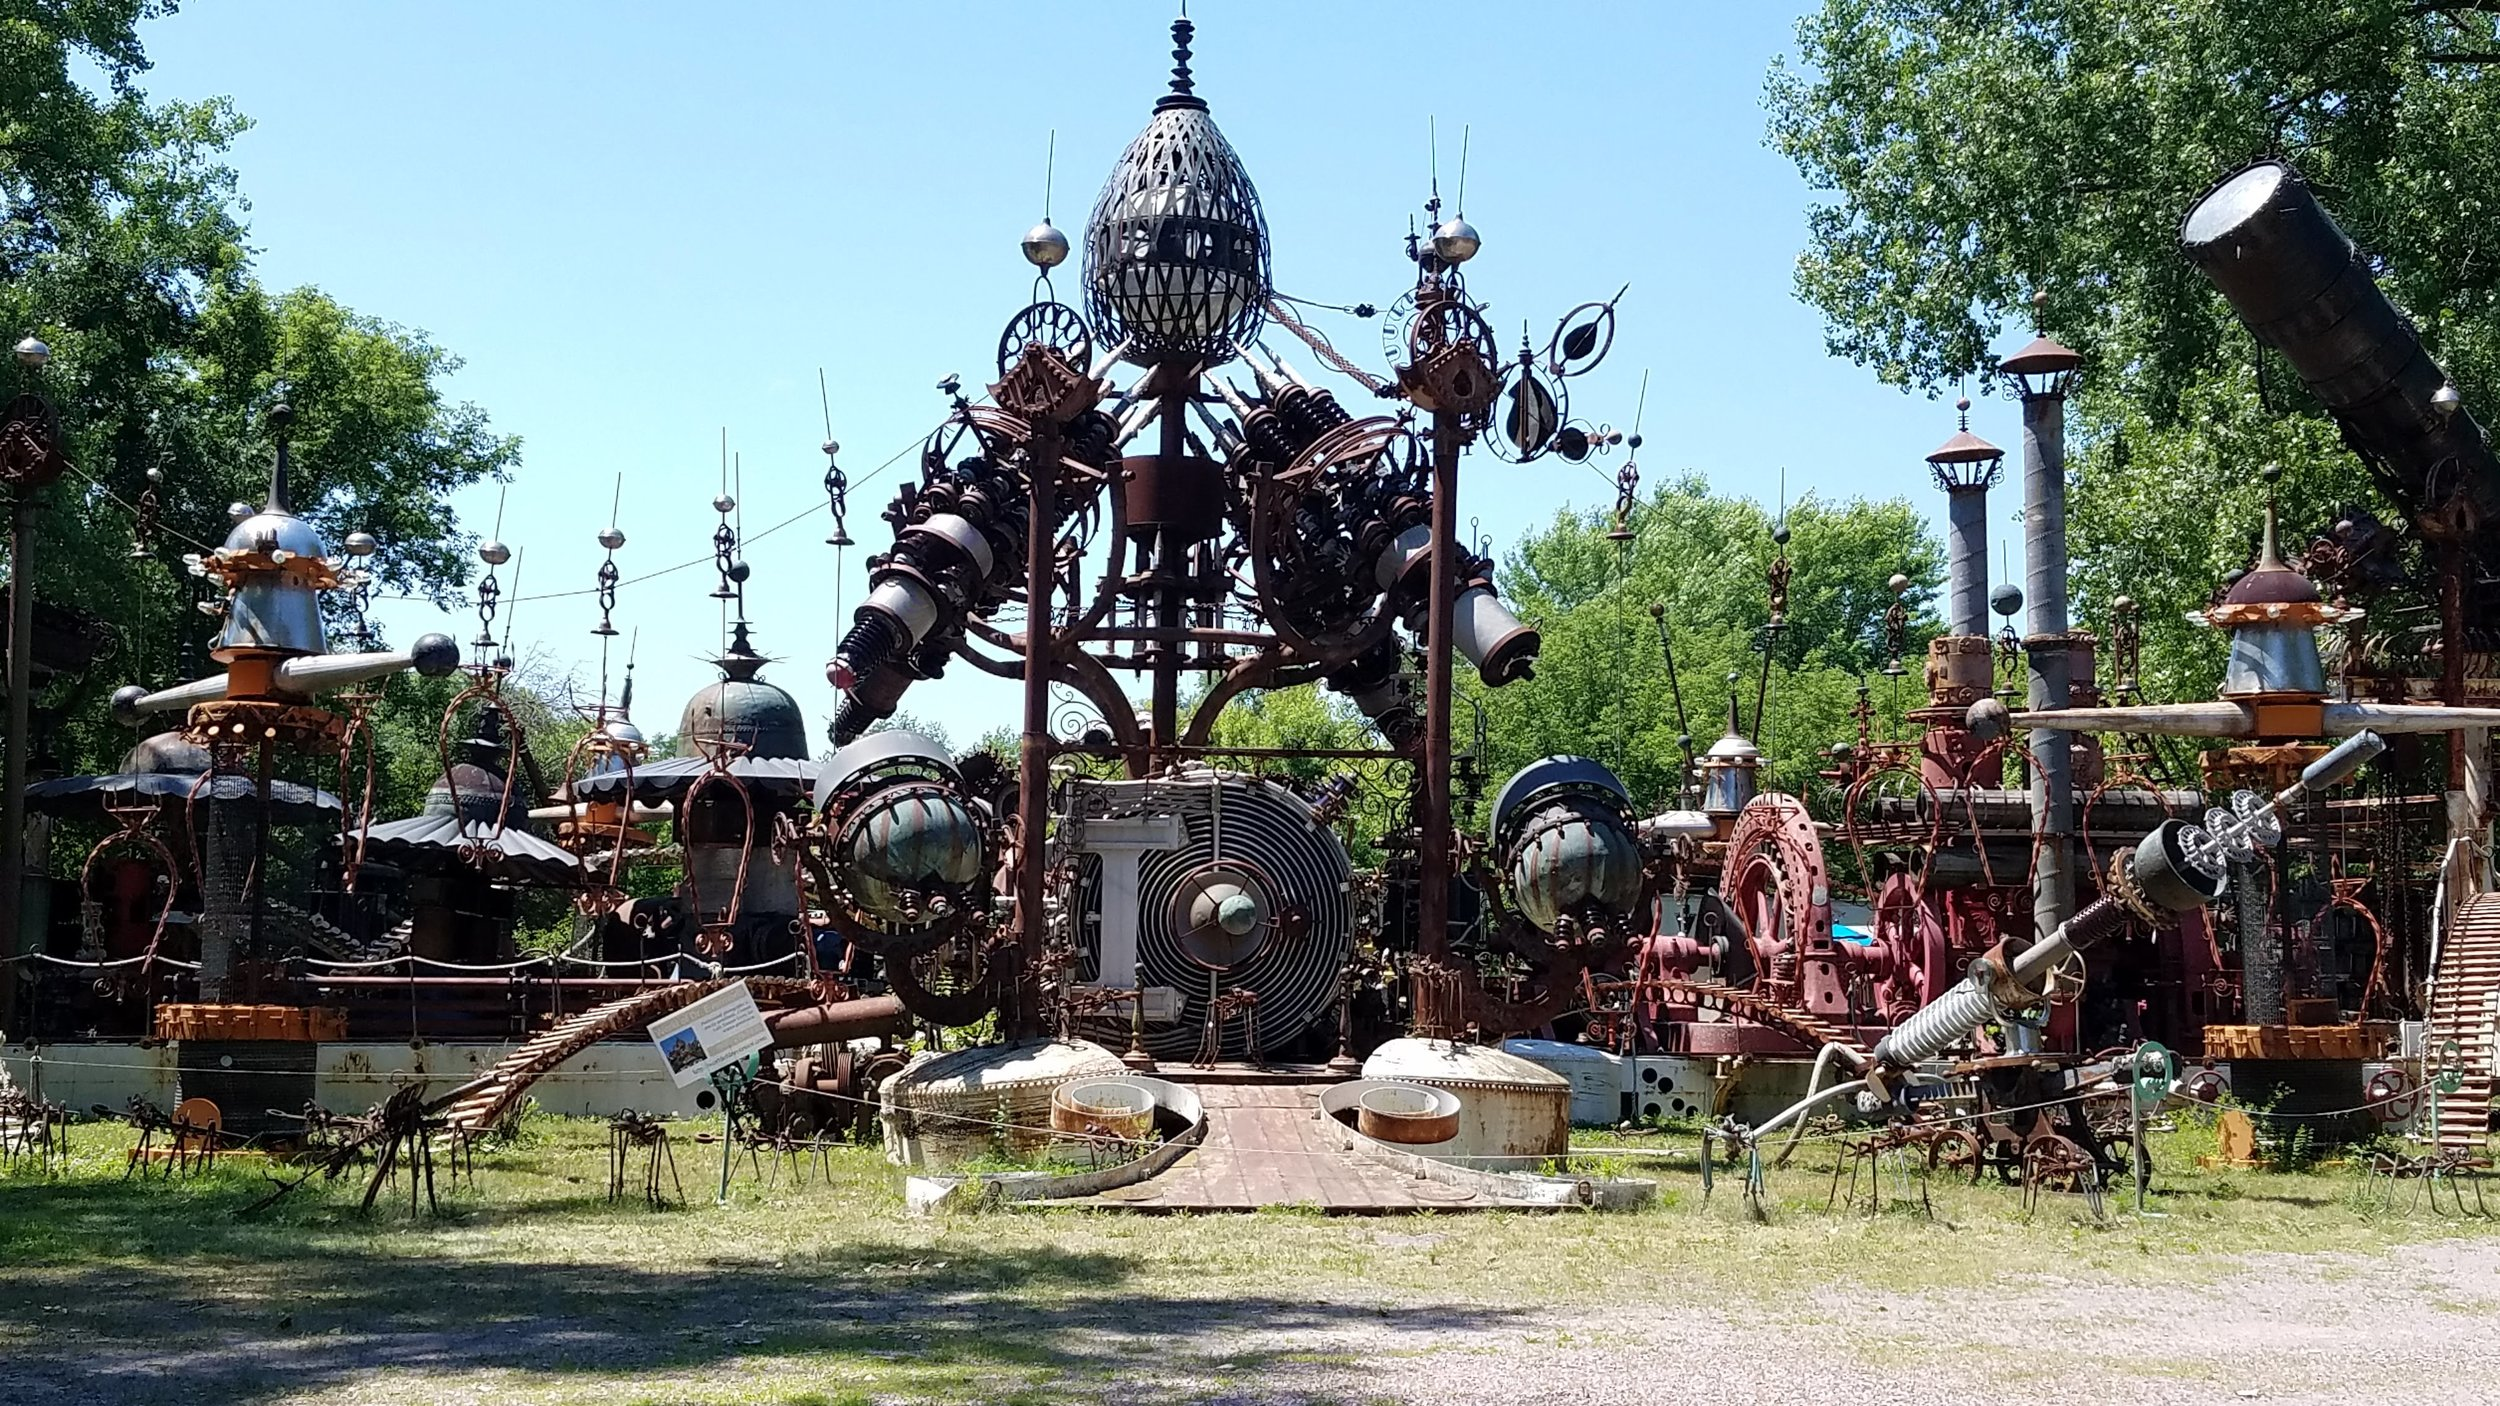 Dr Evermor's Forevertron Park